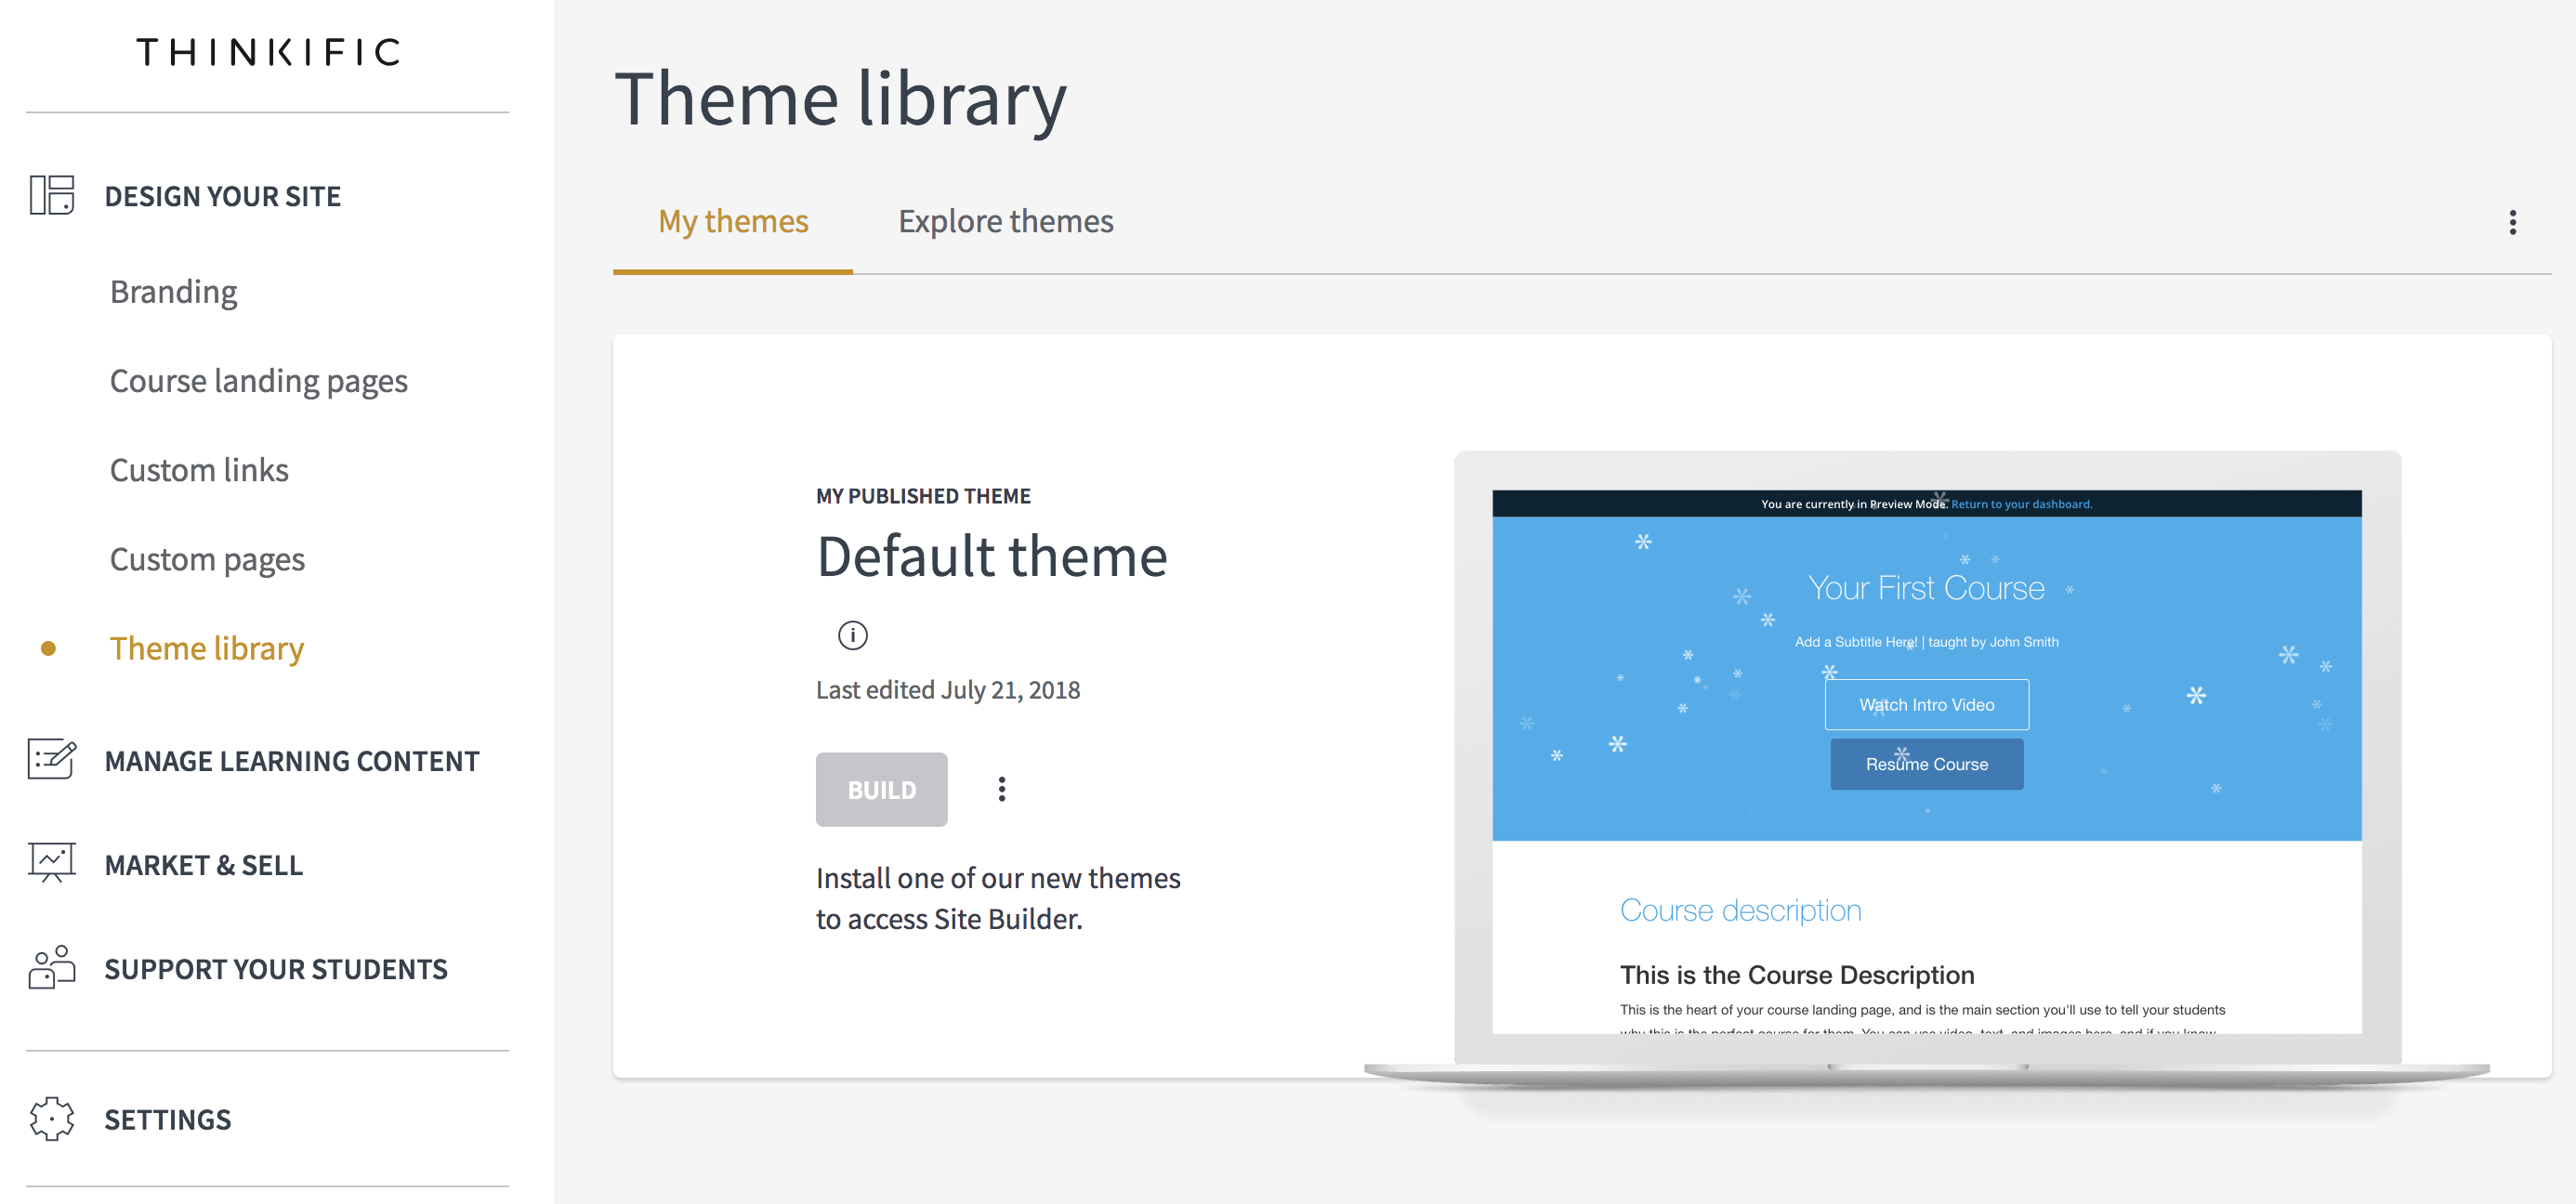 The theme library page on Thinkific